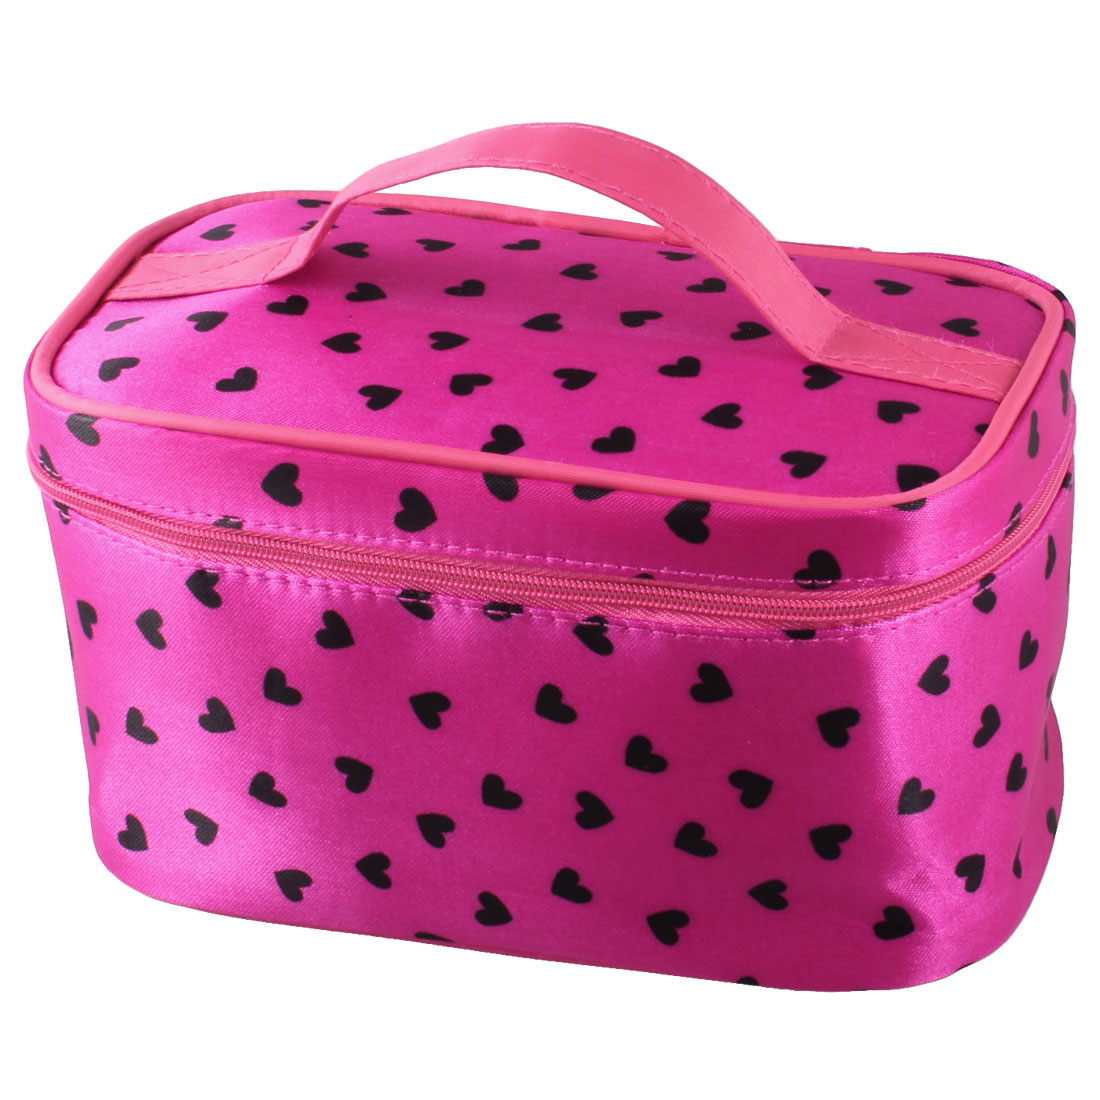 Zip up Closure Black Heart Pattern Fuchsia Travel Accessory Organizer Cosmetic Makeup Case Bag